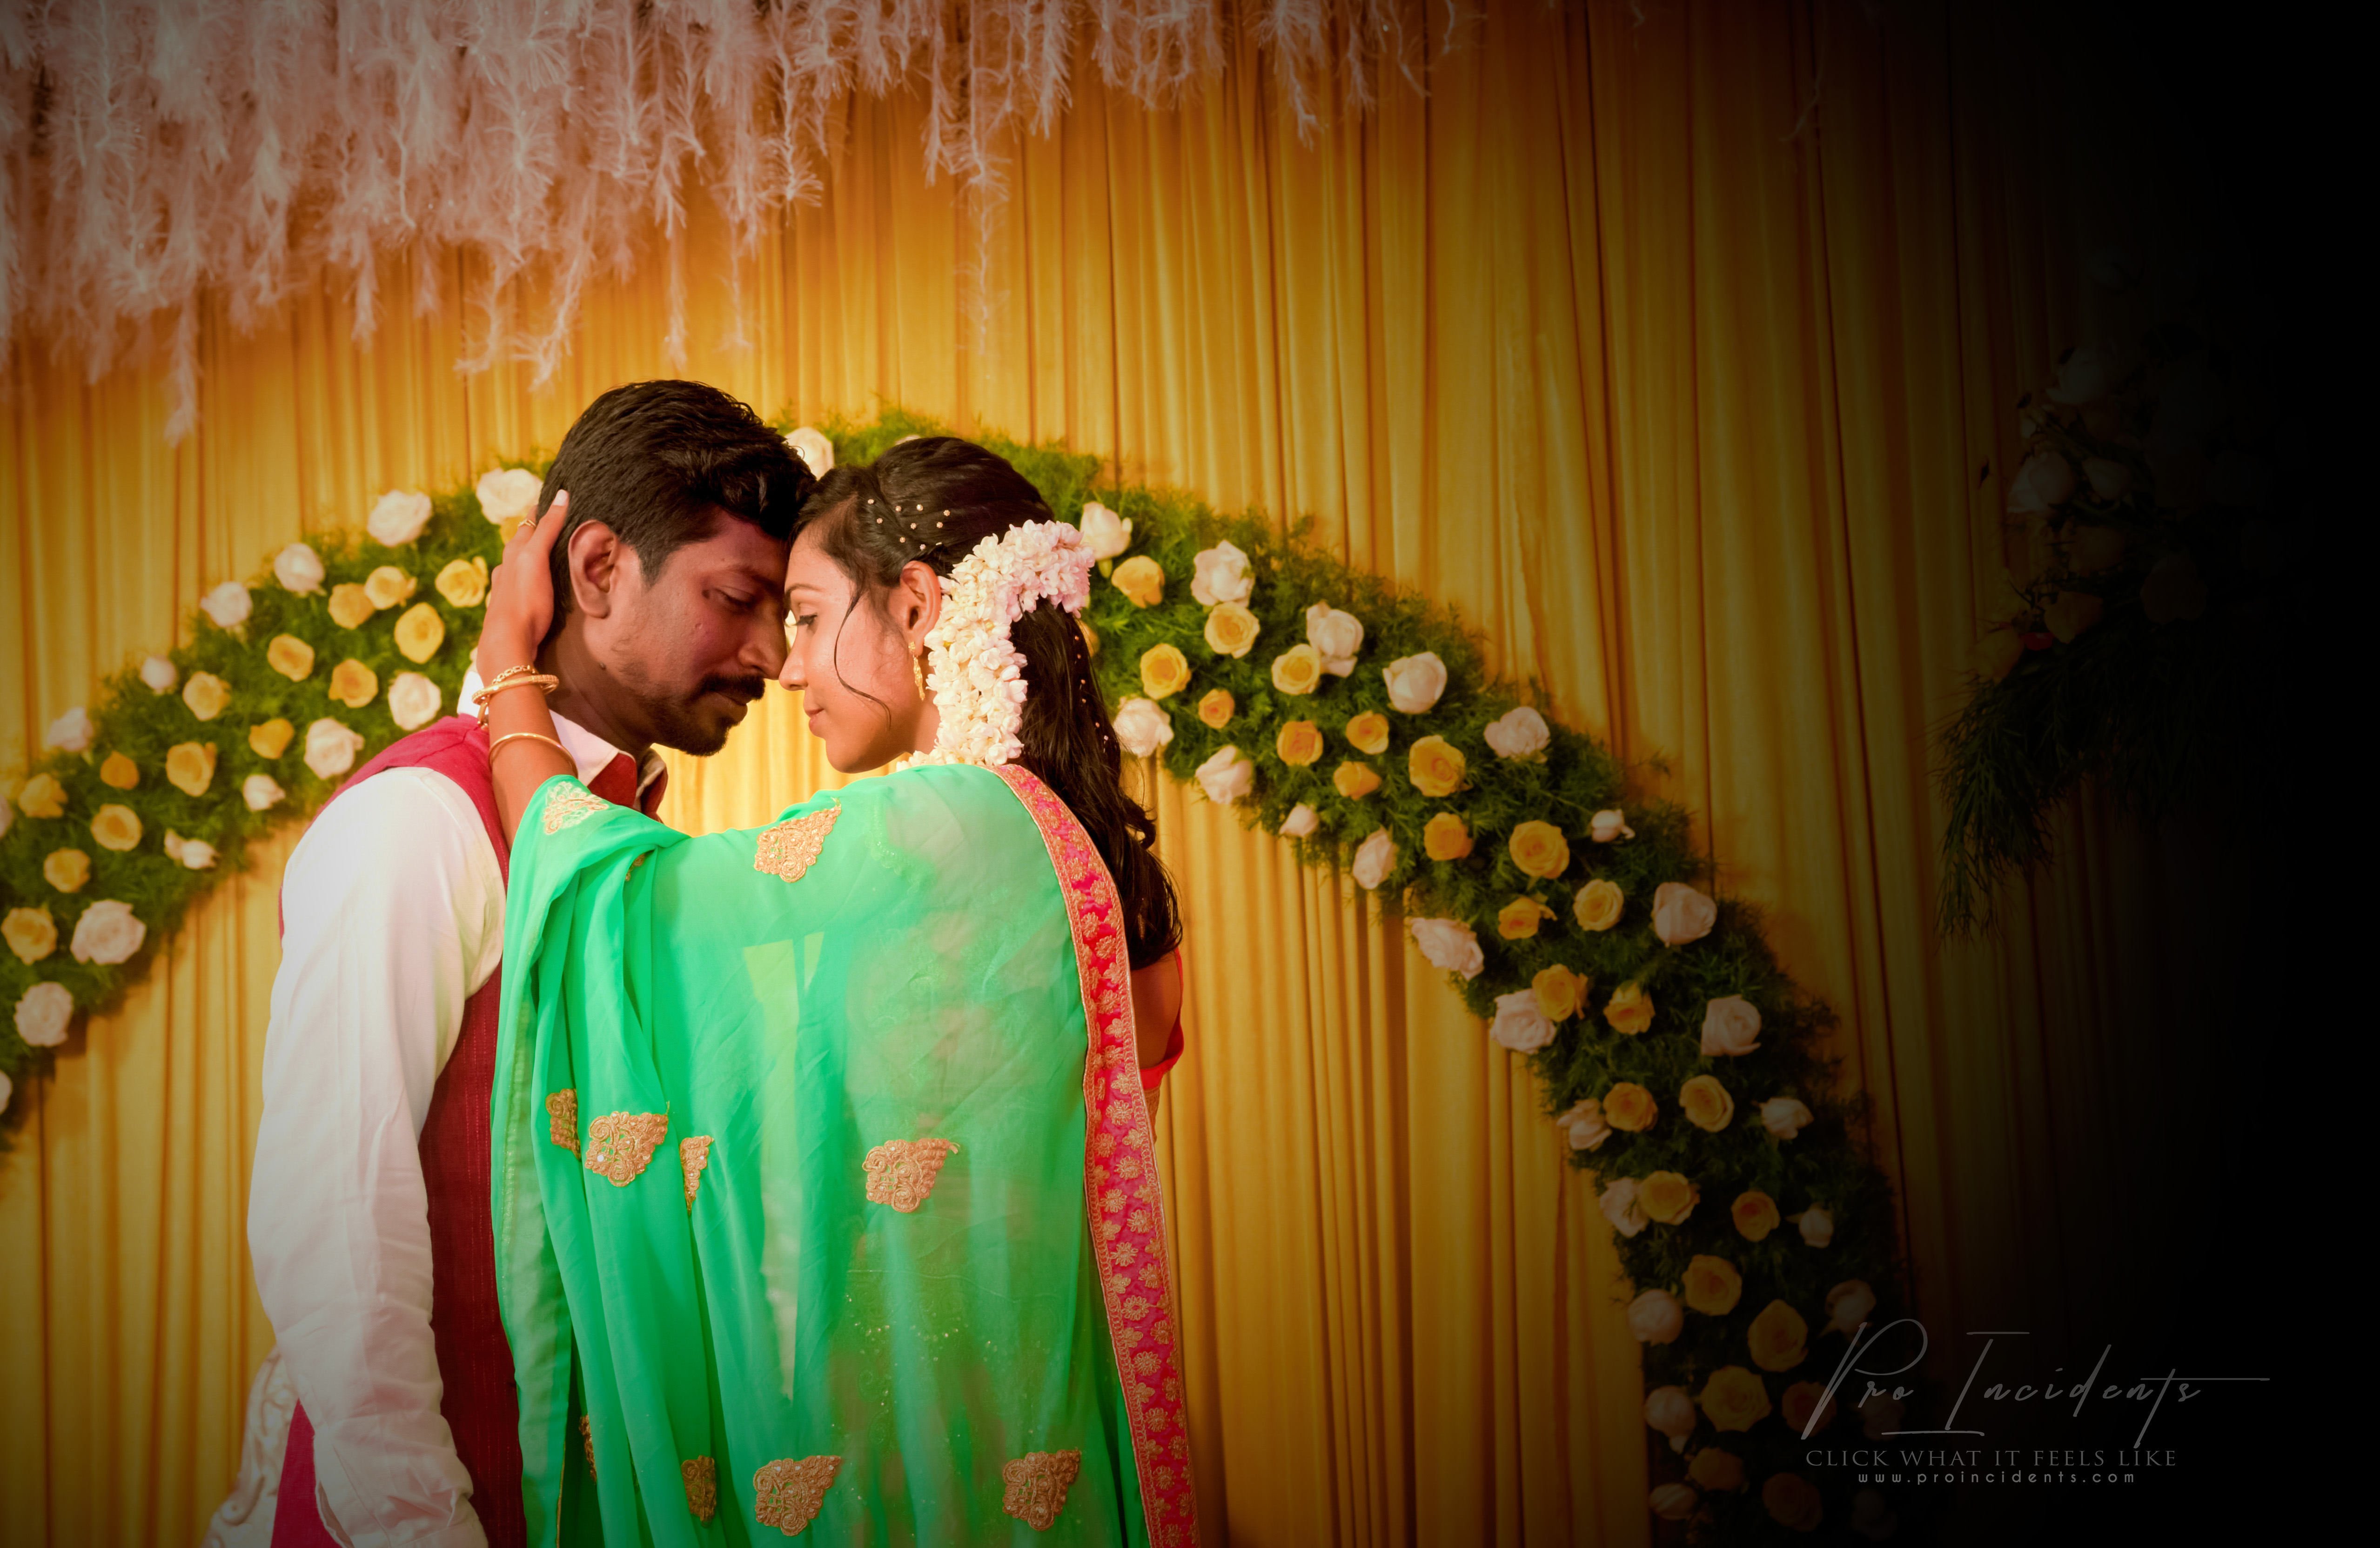 Wedding Premier Photography